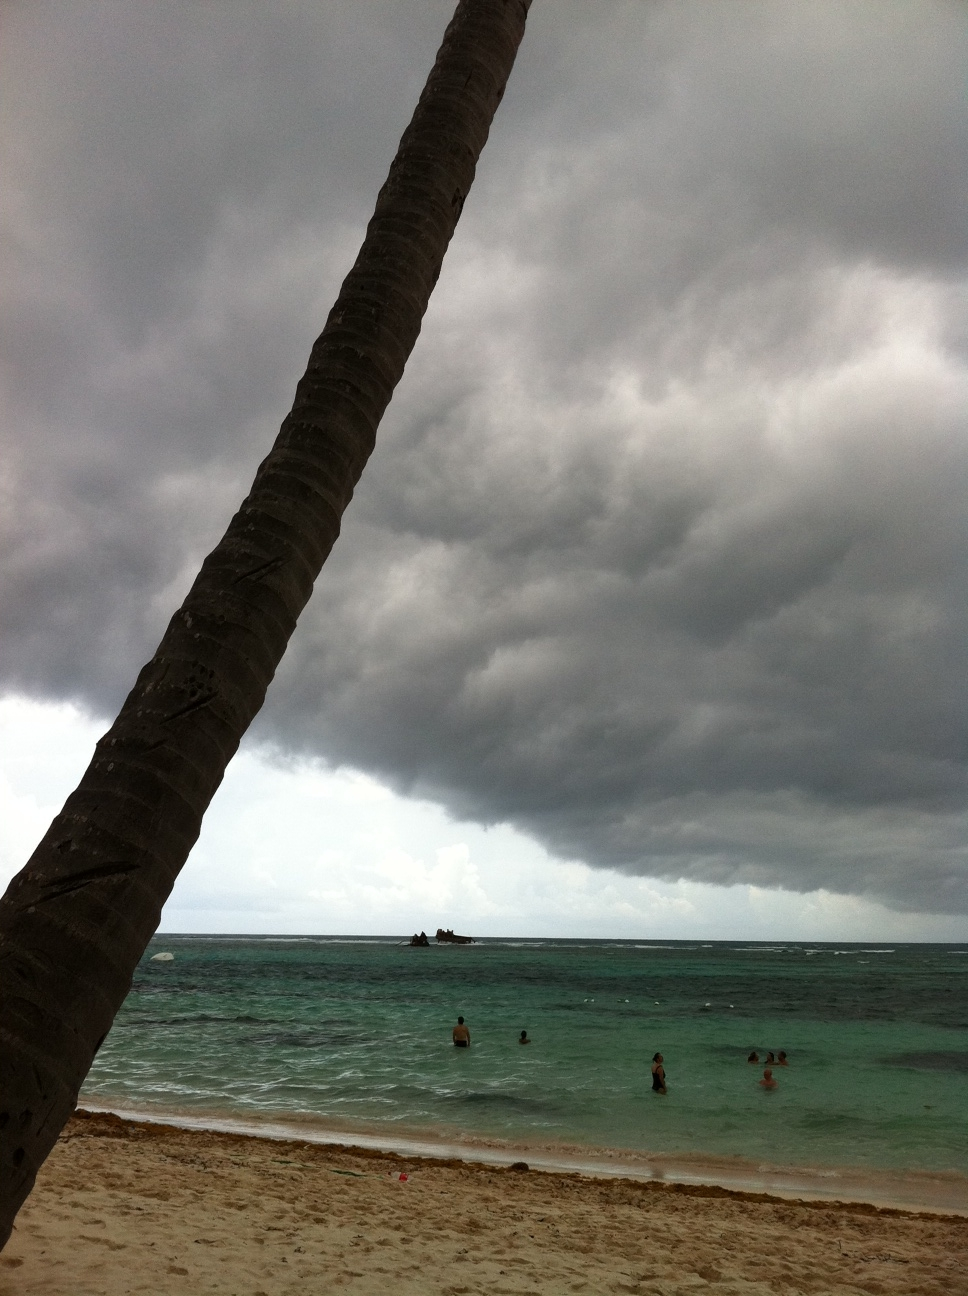 Aftermath of Hurricane Irene, Punta Cana, Dominican Republic, August 25, 2011